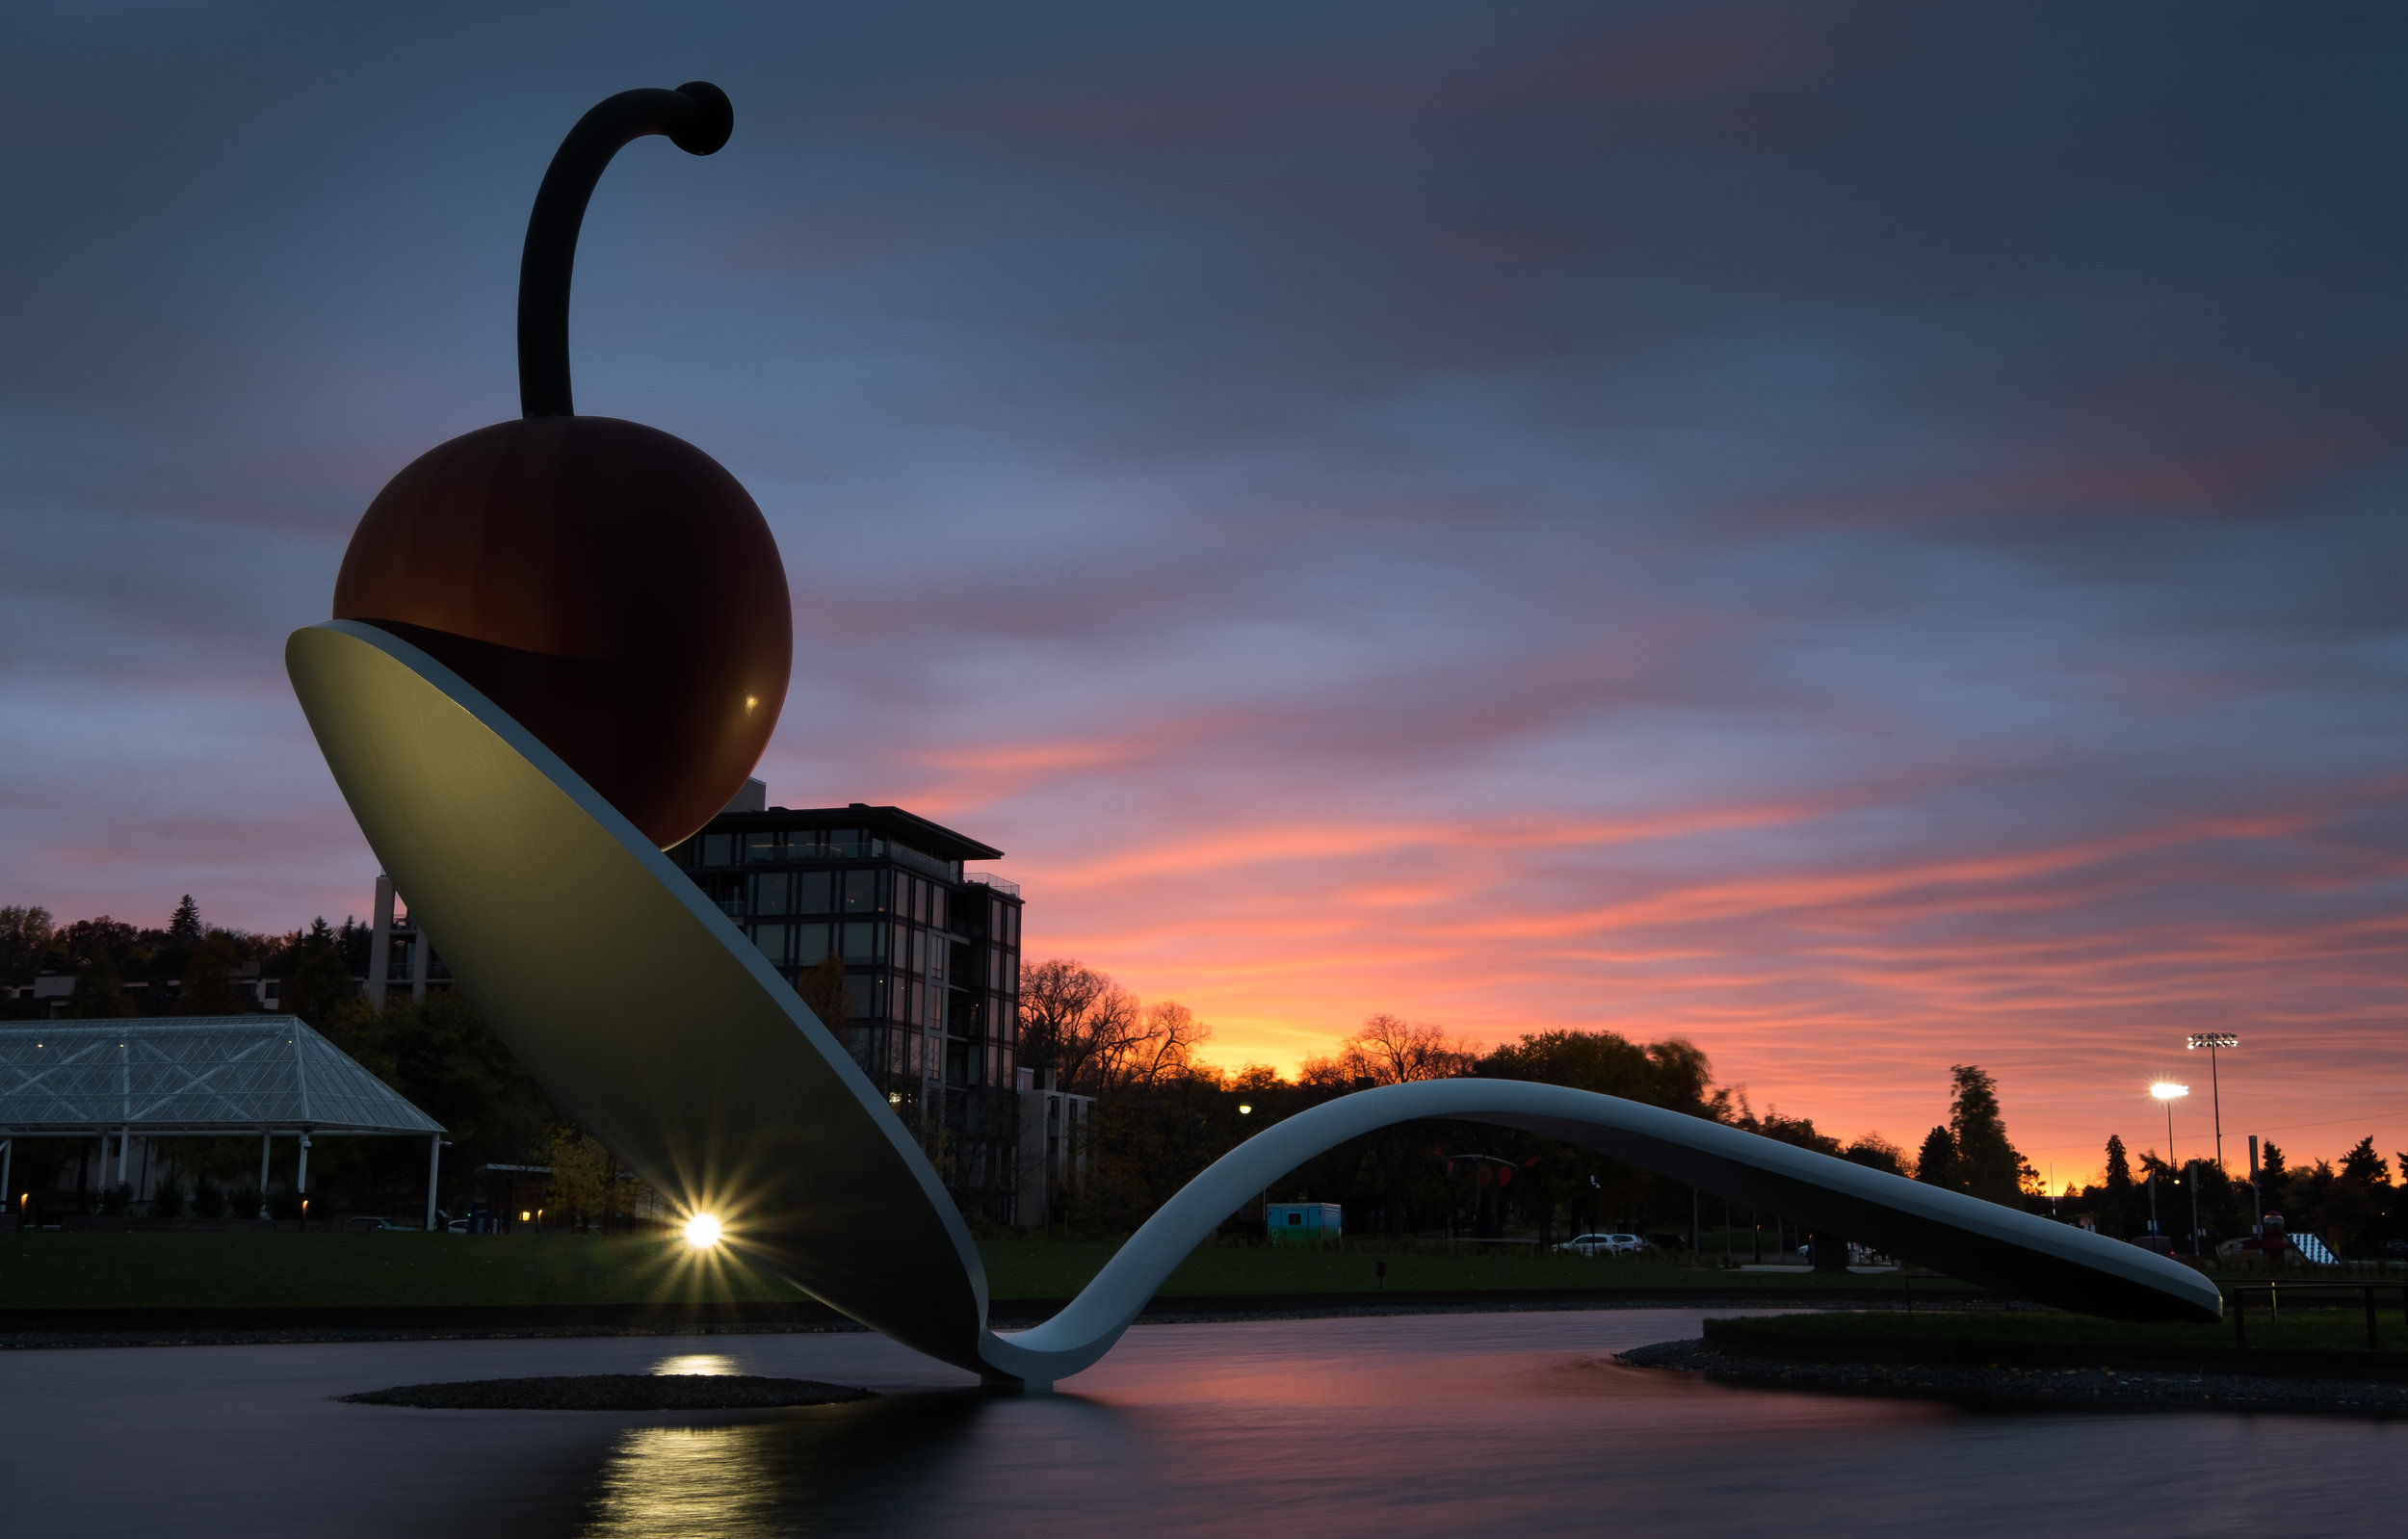 Cherry and Spoon at Sunset.jpg